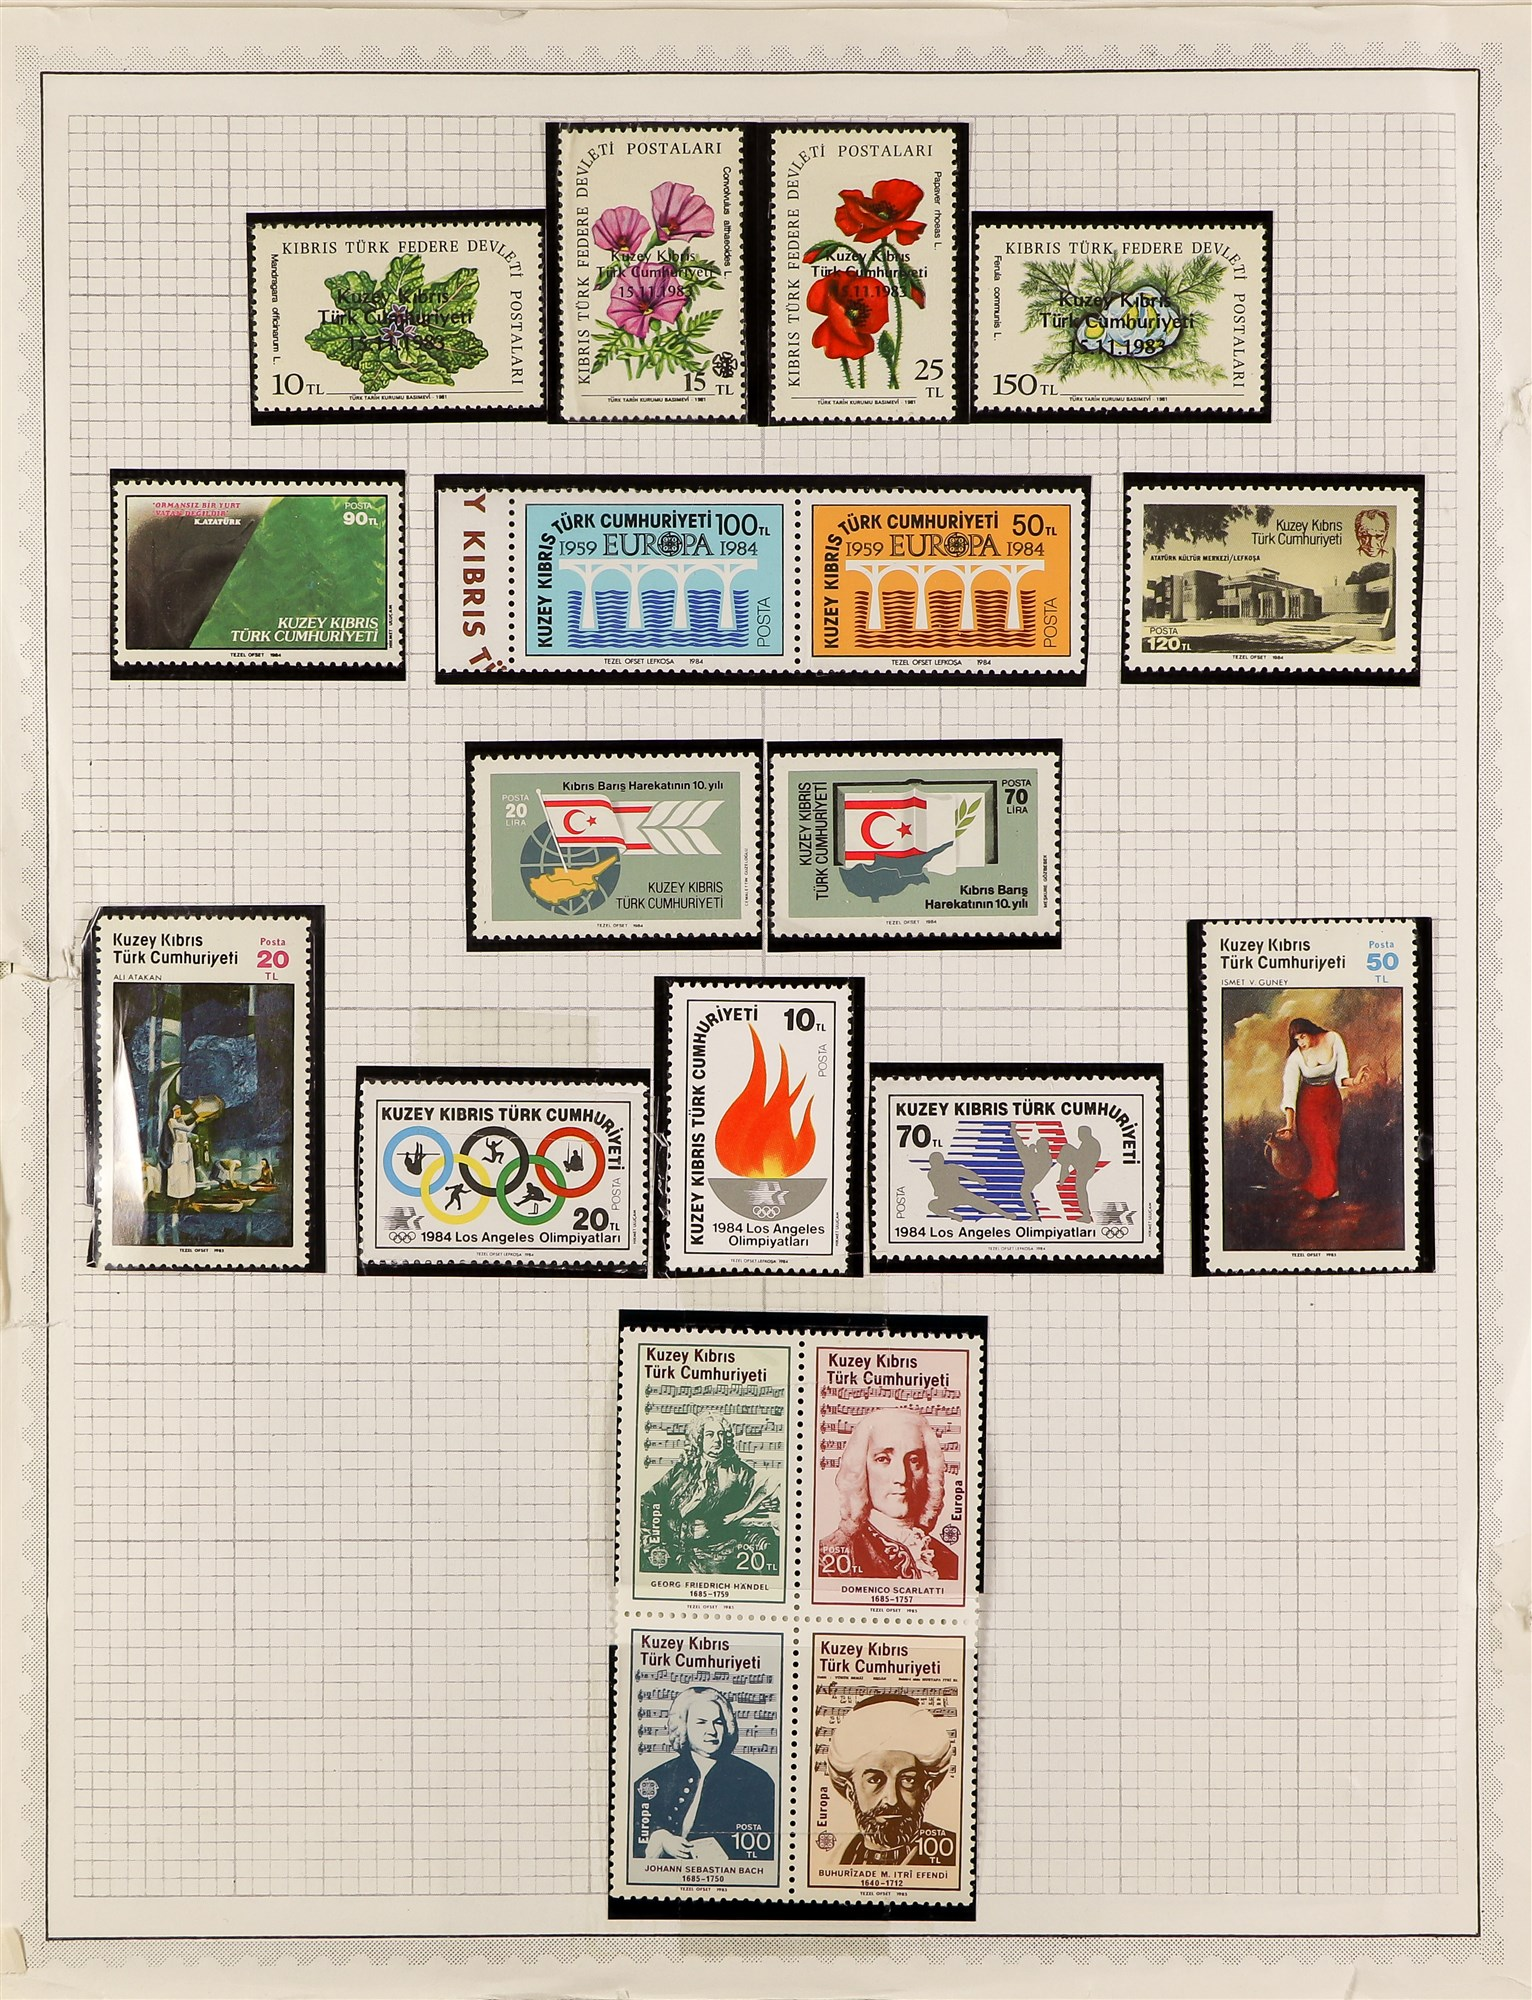 CYPRUS TURKISH CYPRIOT POST 1976-1985 almost complete never hinged mint collection, with a few - Image 2 of 2